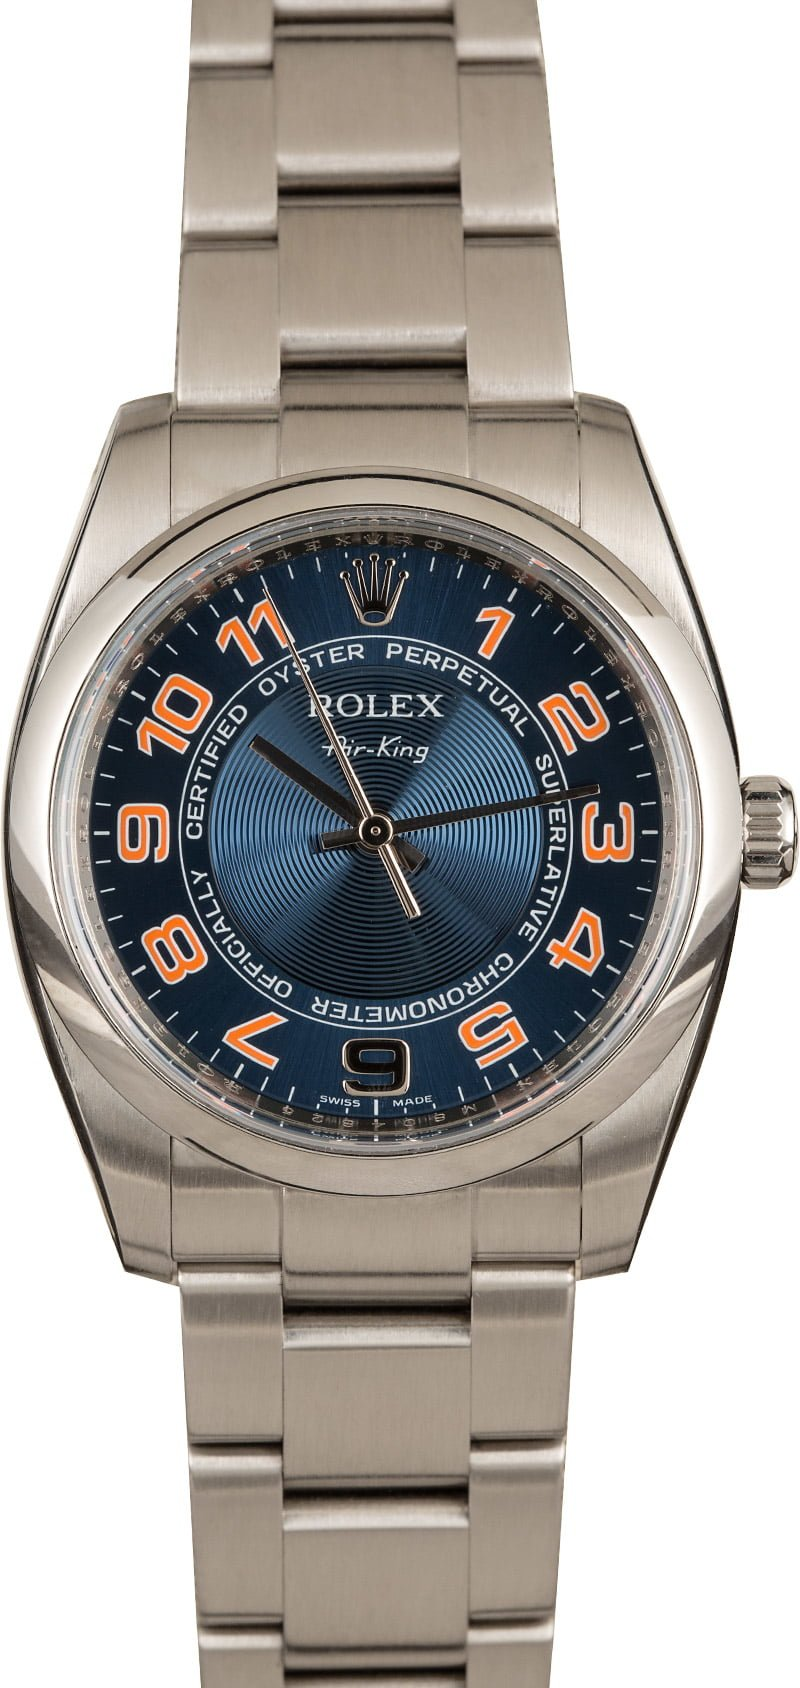 Our Favorite Bright Colorful Rolex Watch Dials Air-King 114200 Blue Orange Arabic Dial